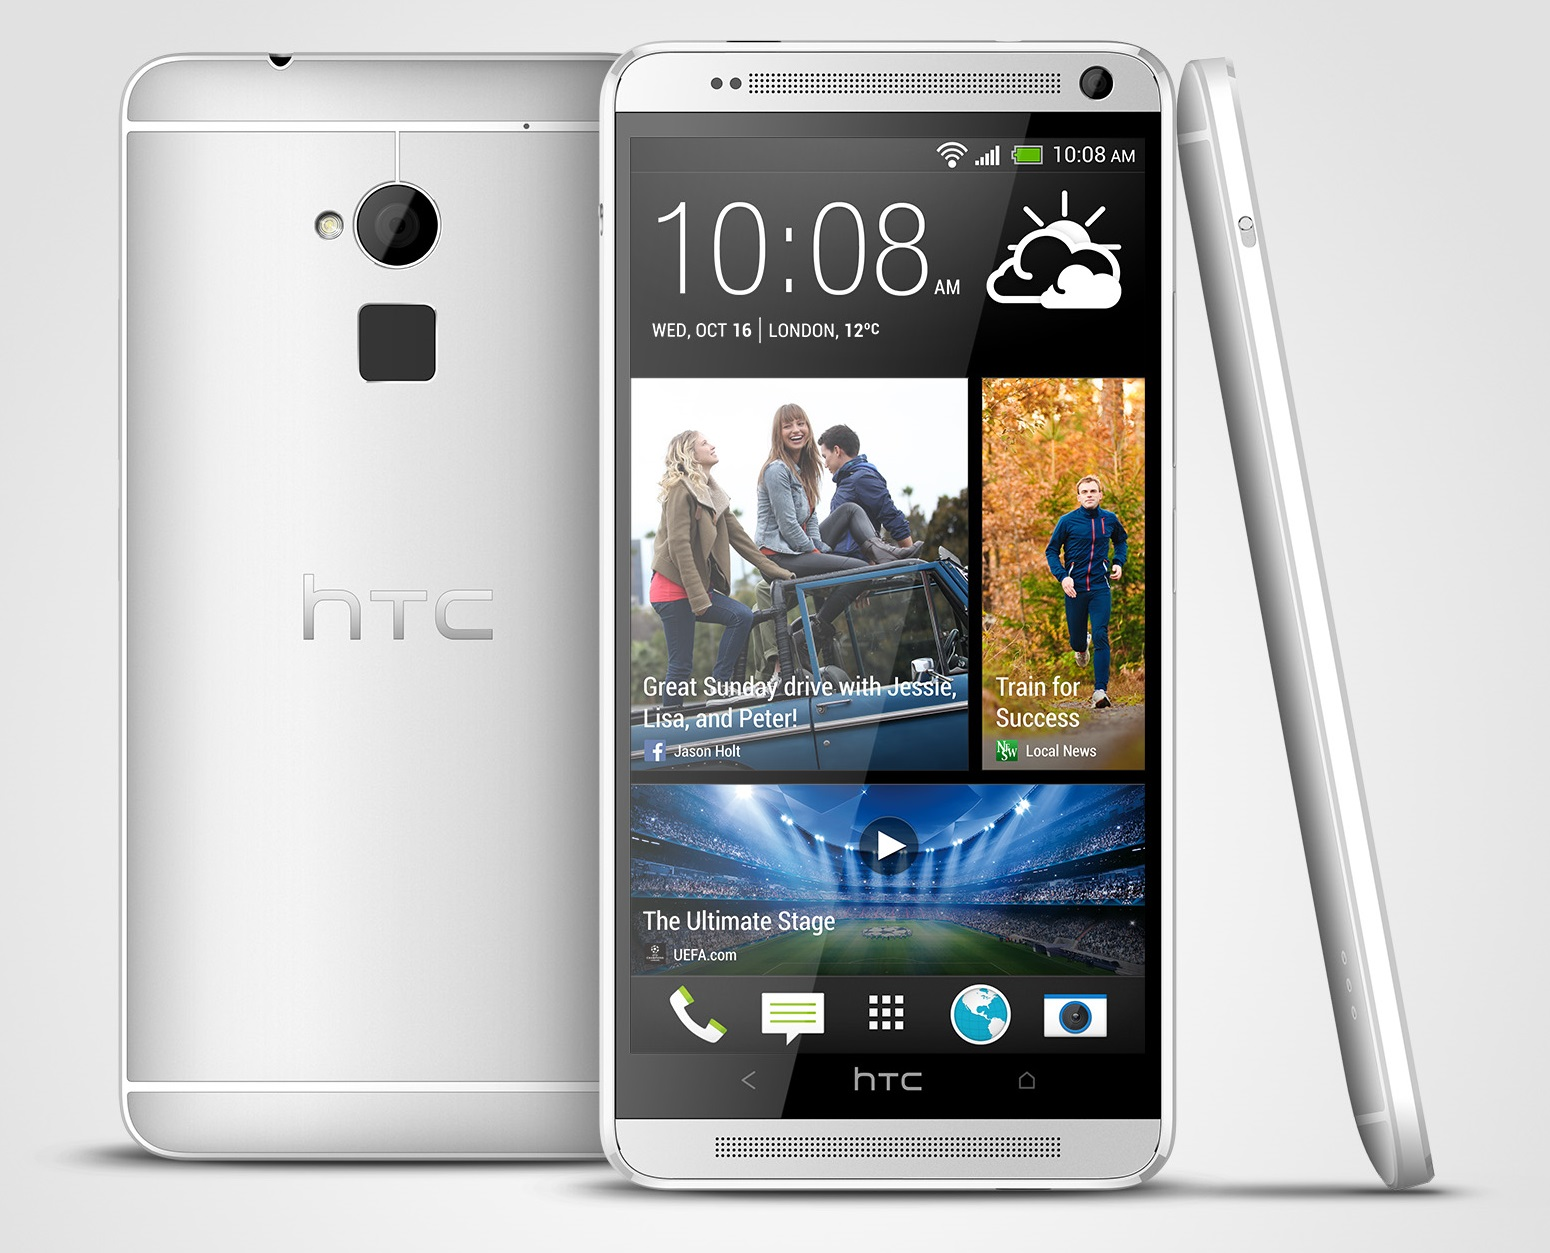 HTC-One-max 02